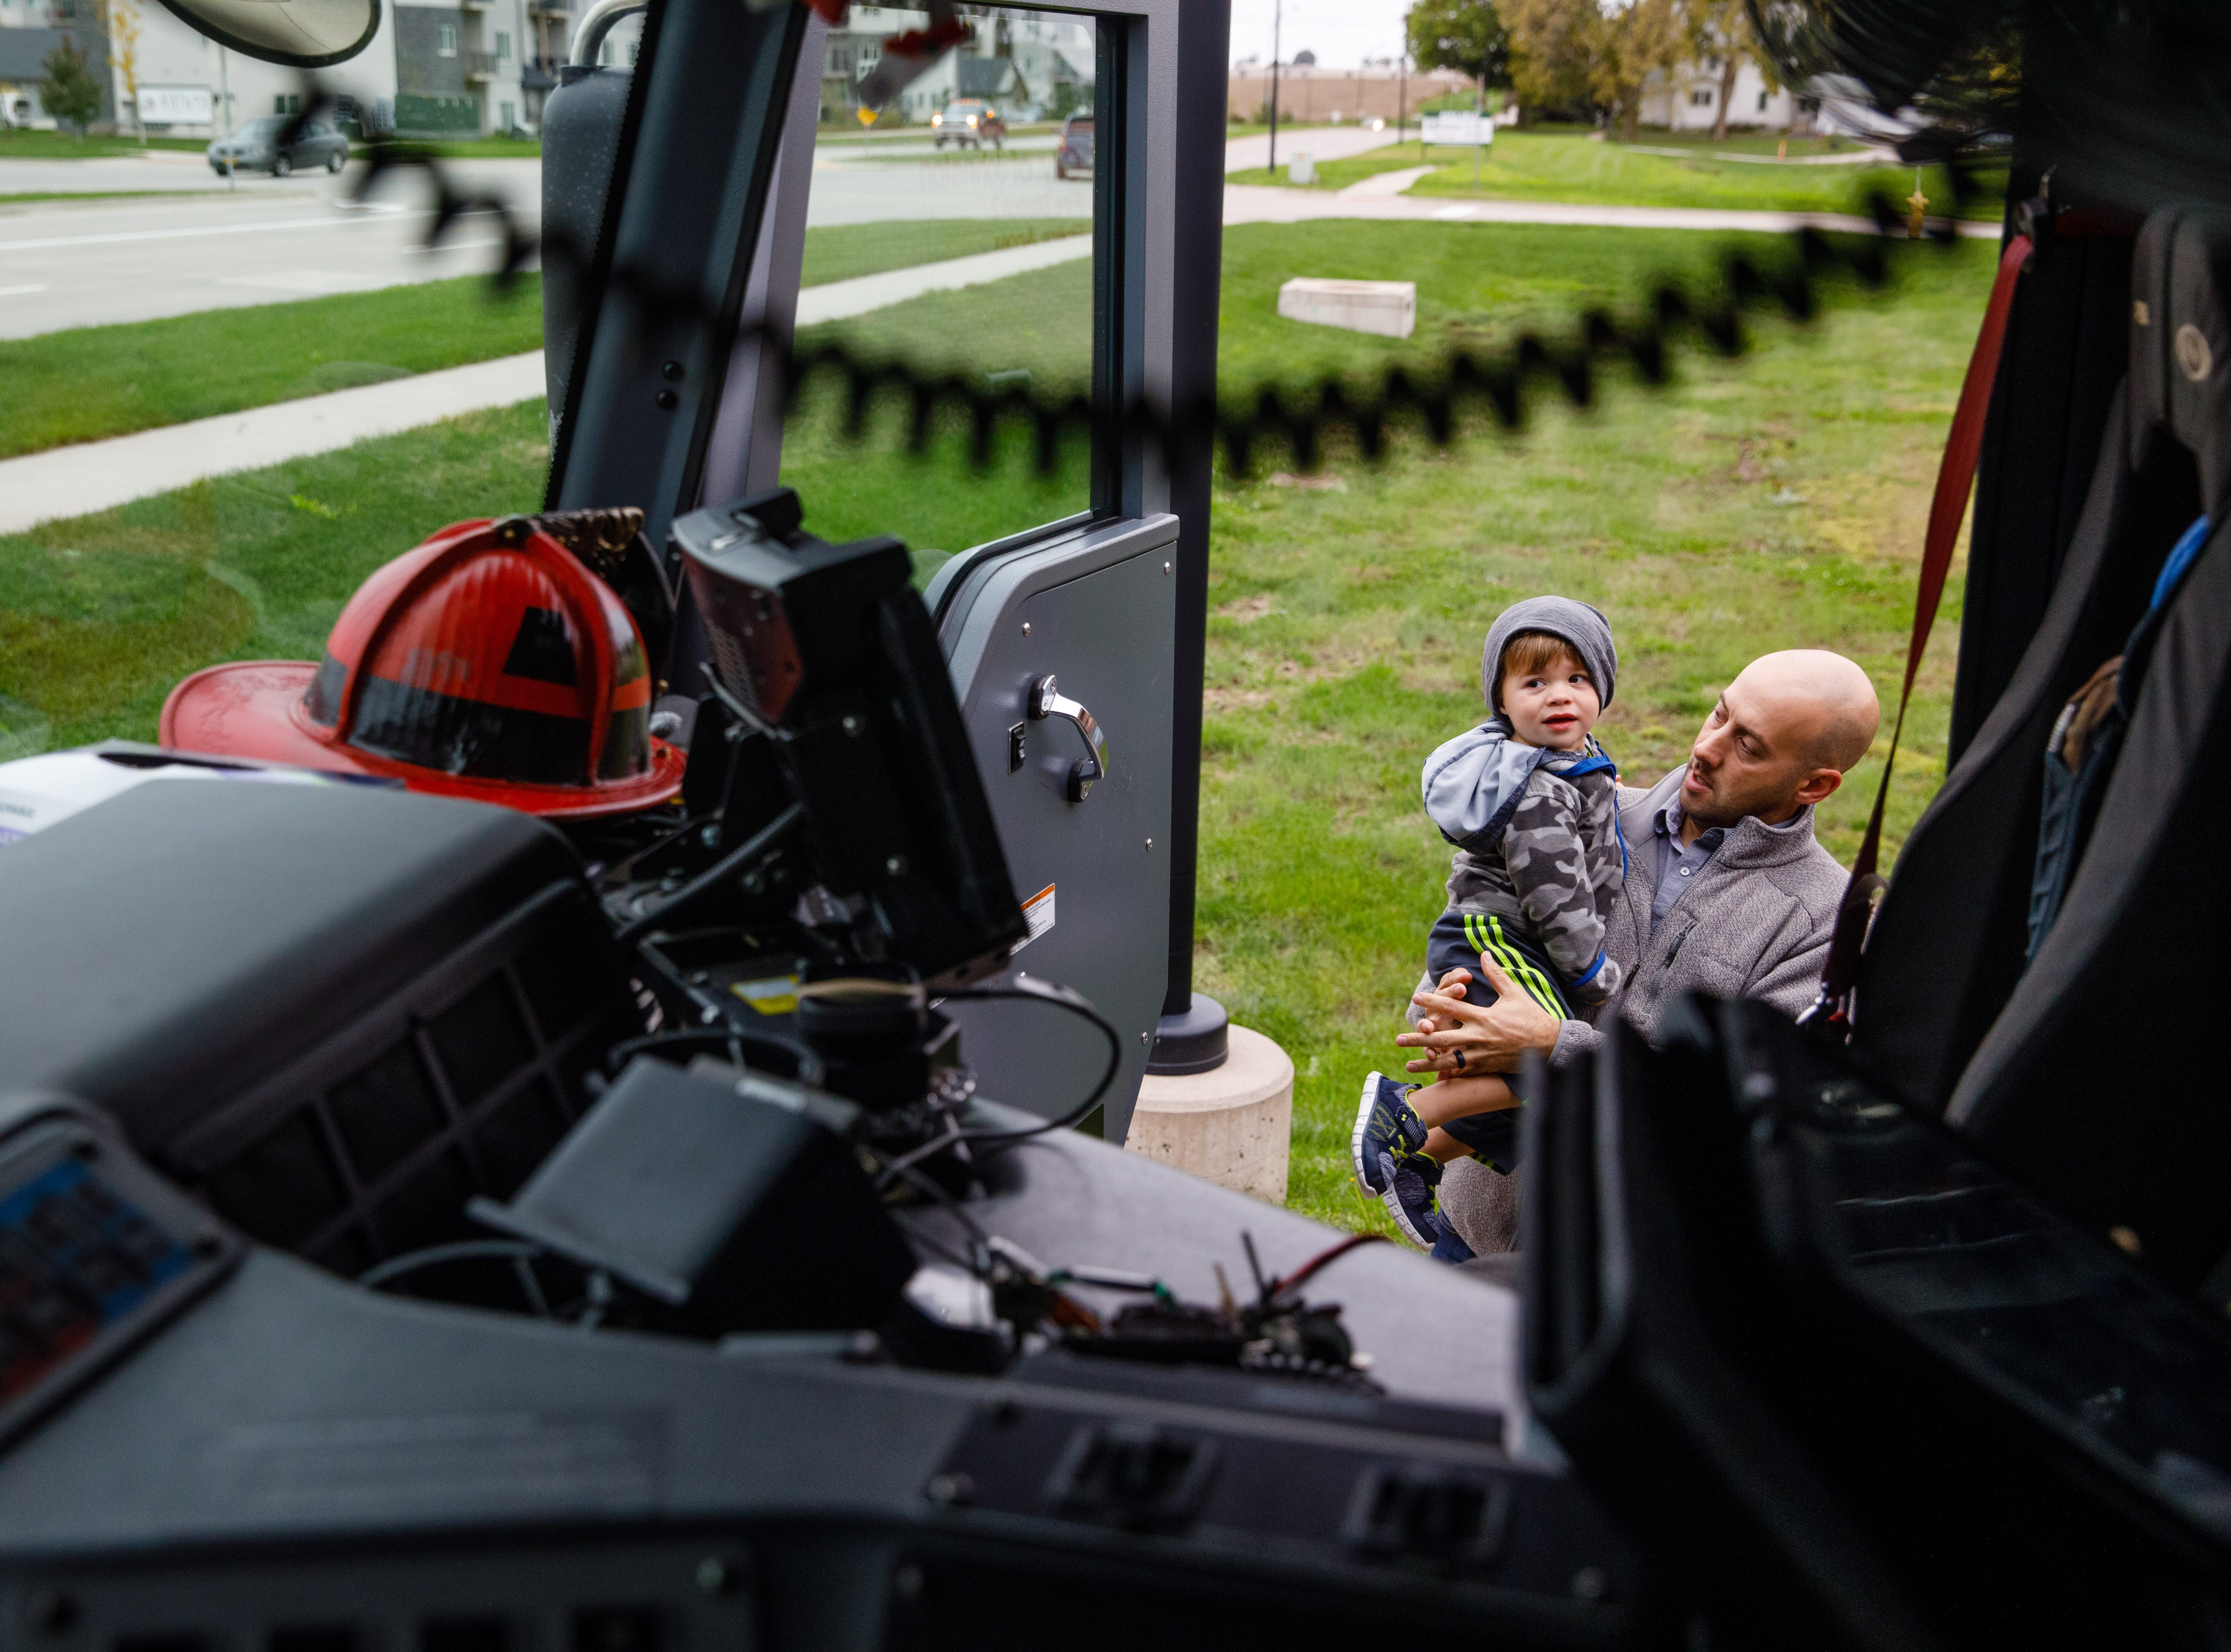 TJ Sprague, 2, and Joshua Sprague, both of Grimes, look into a fire truck Wednesday, Oct. 10, 2018, during the Johnston-Grimes Metropolitan Fire Department's annual Fire Prevention Week Open House at the 62nd Avenue Fire Station in Johnston.